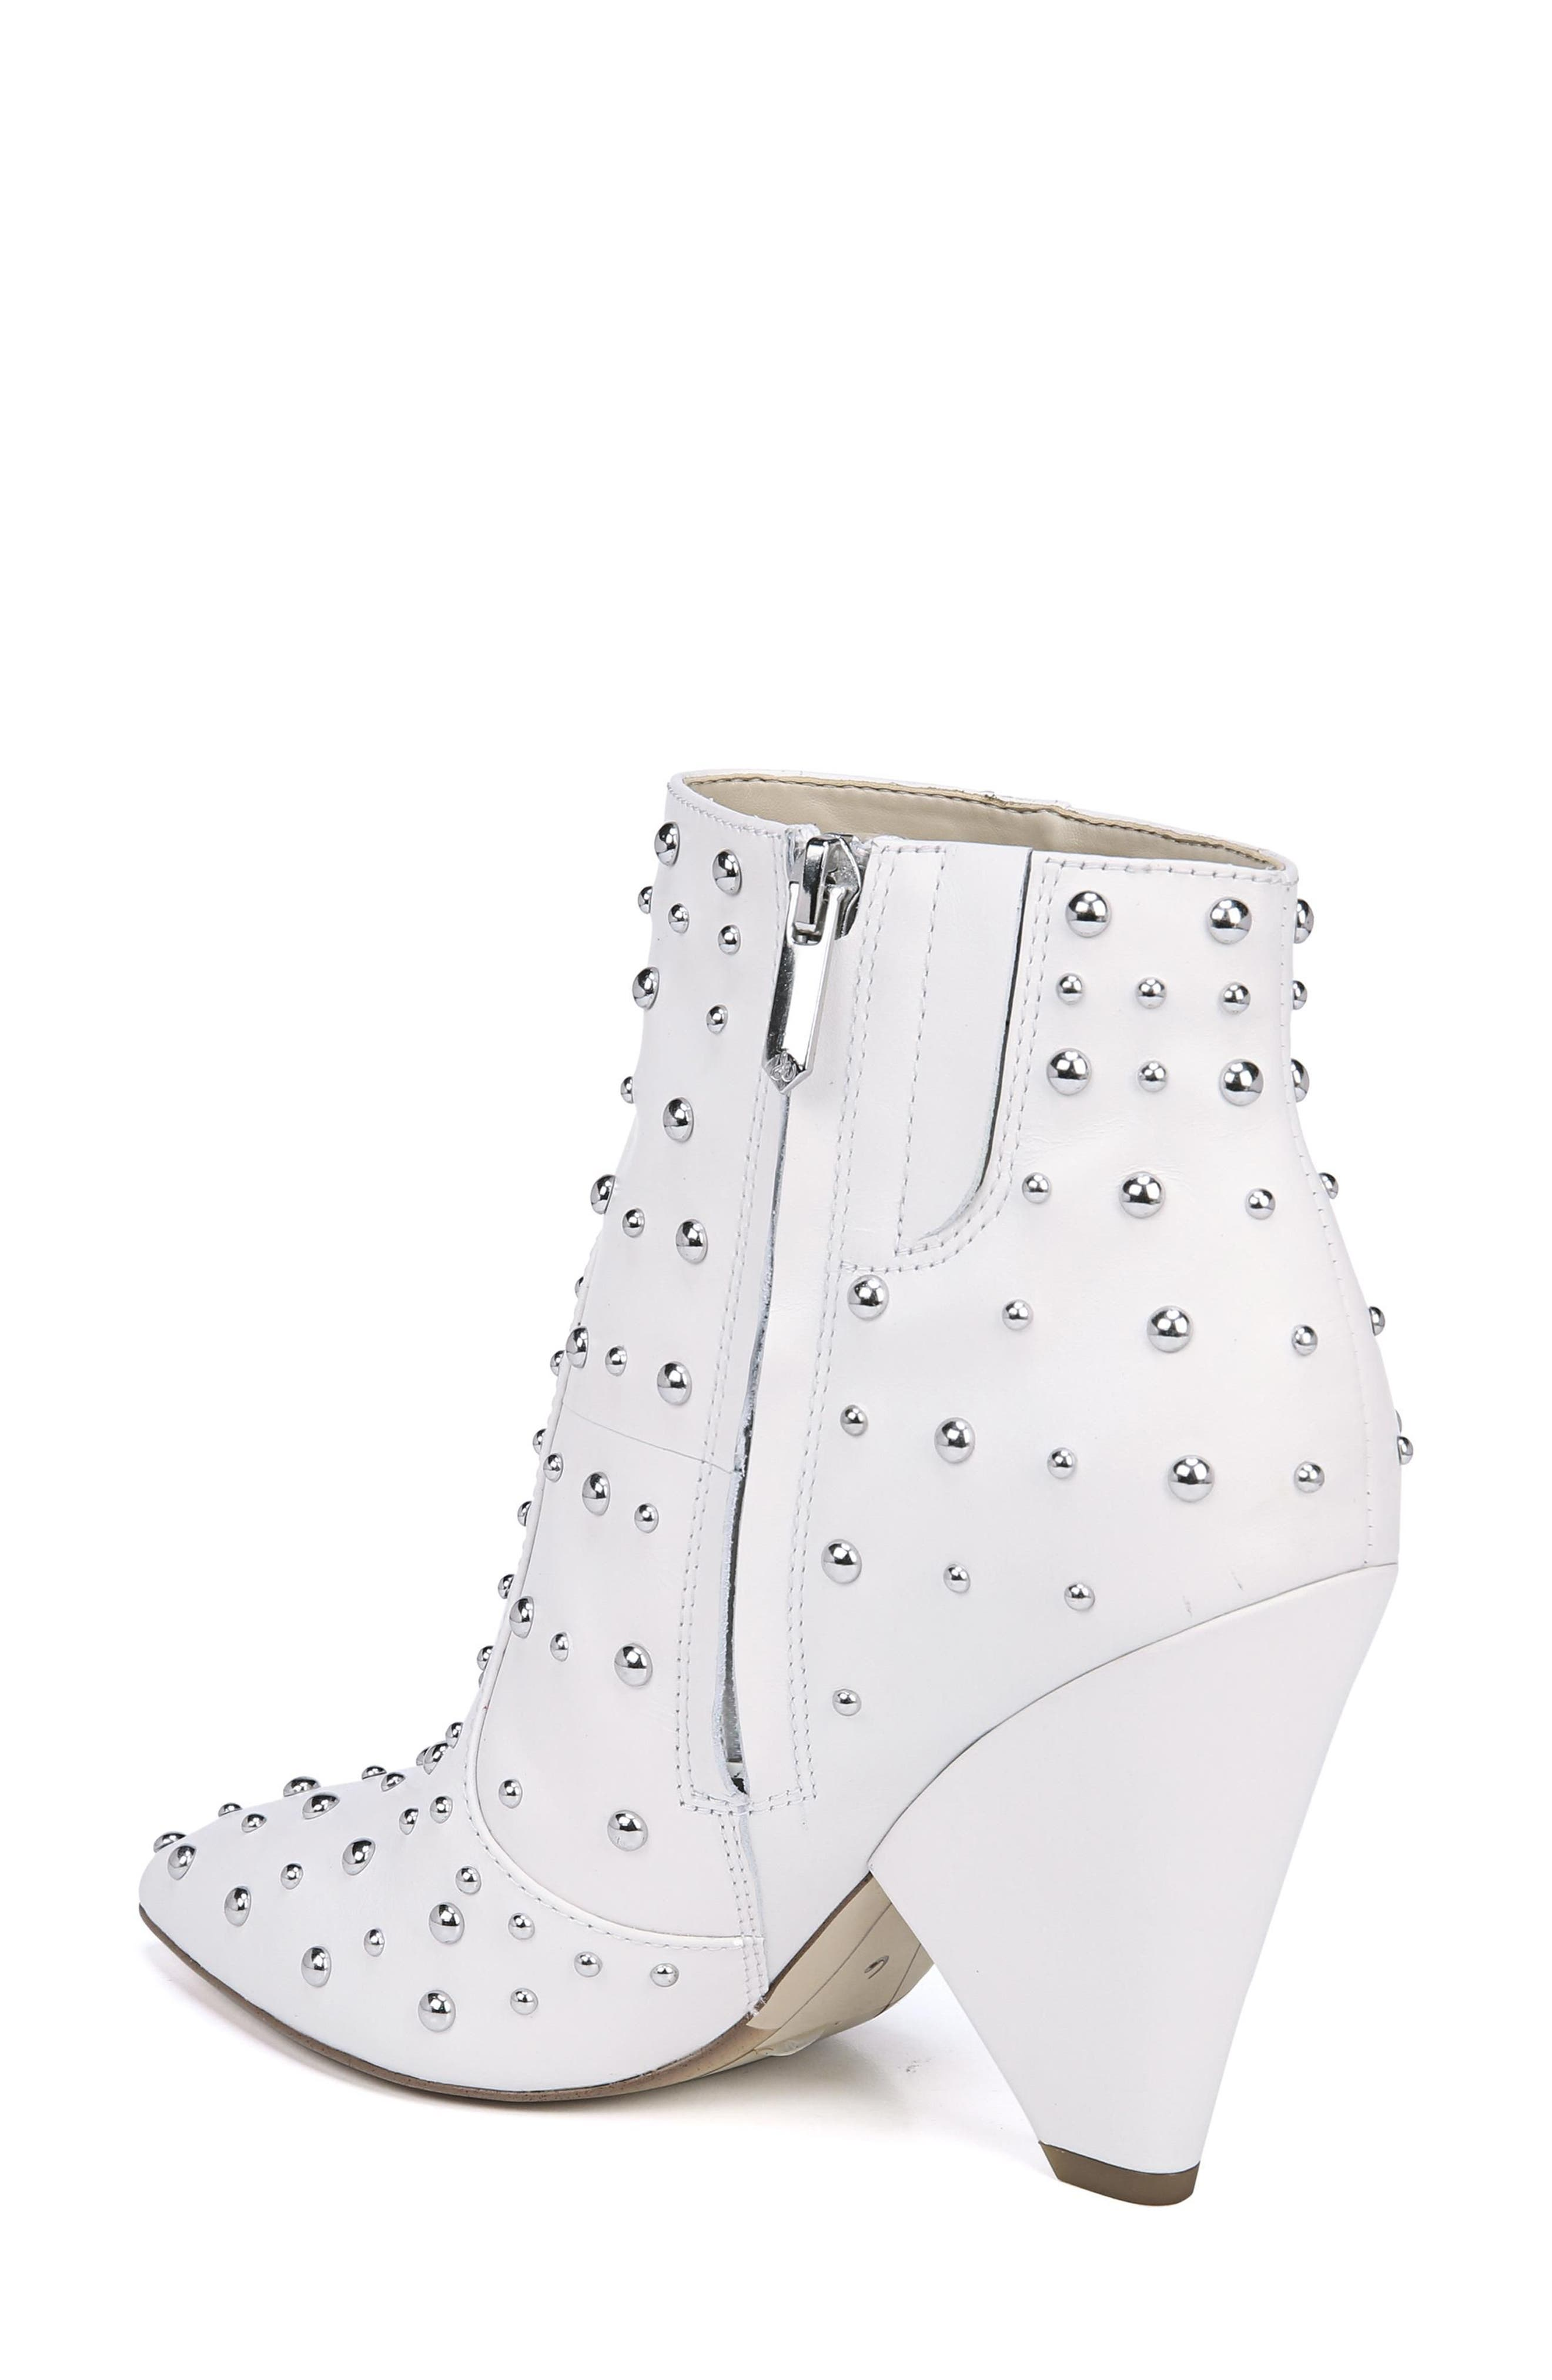 Roya Studded Boot,                             Alternate thumbnail 2, color,                             BRIGHT WHITE LEATHER